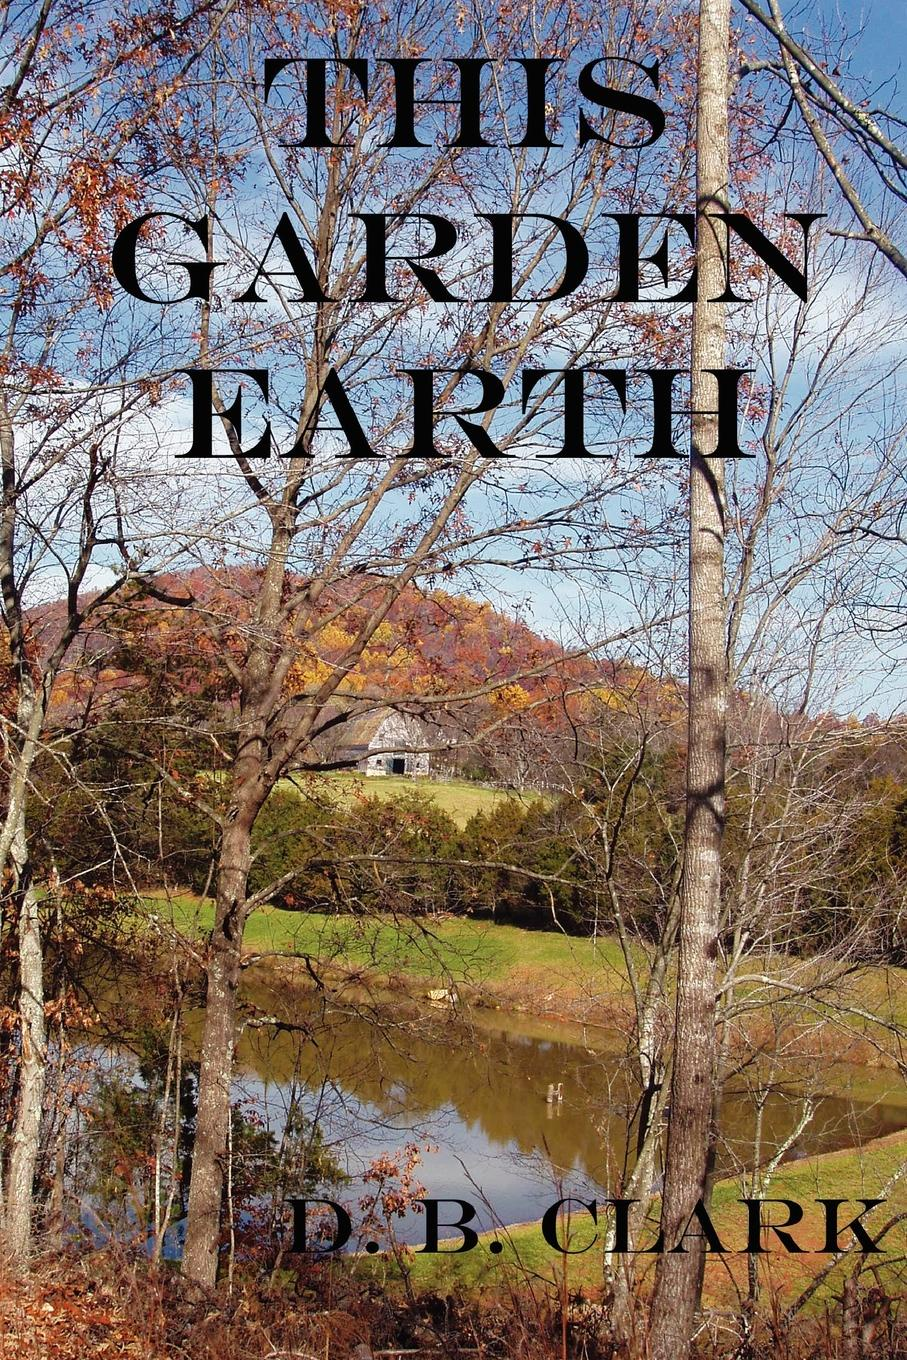 D. B. Clark This Garden Earth eucharist and living earth